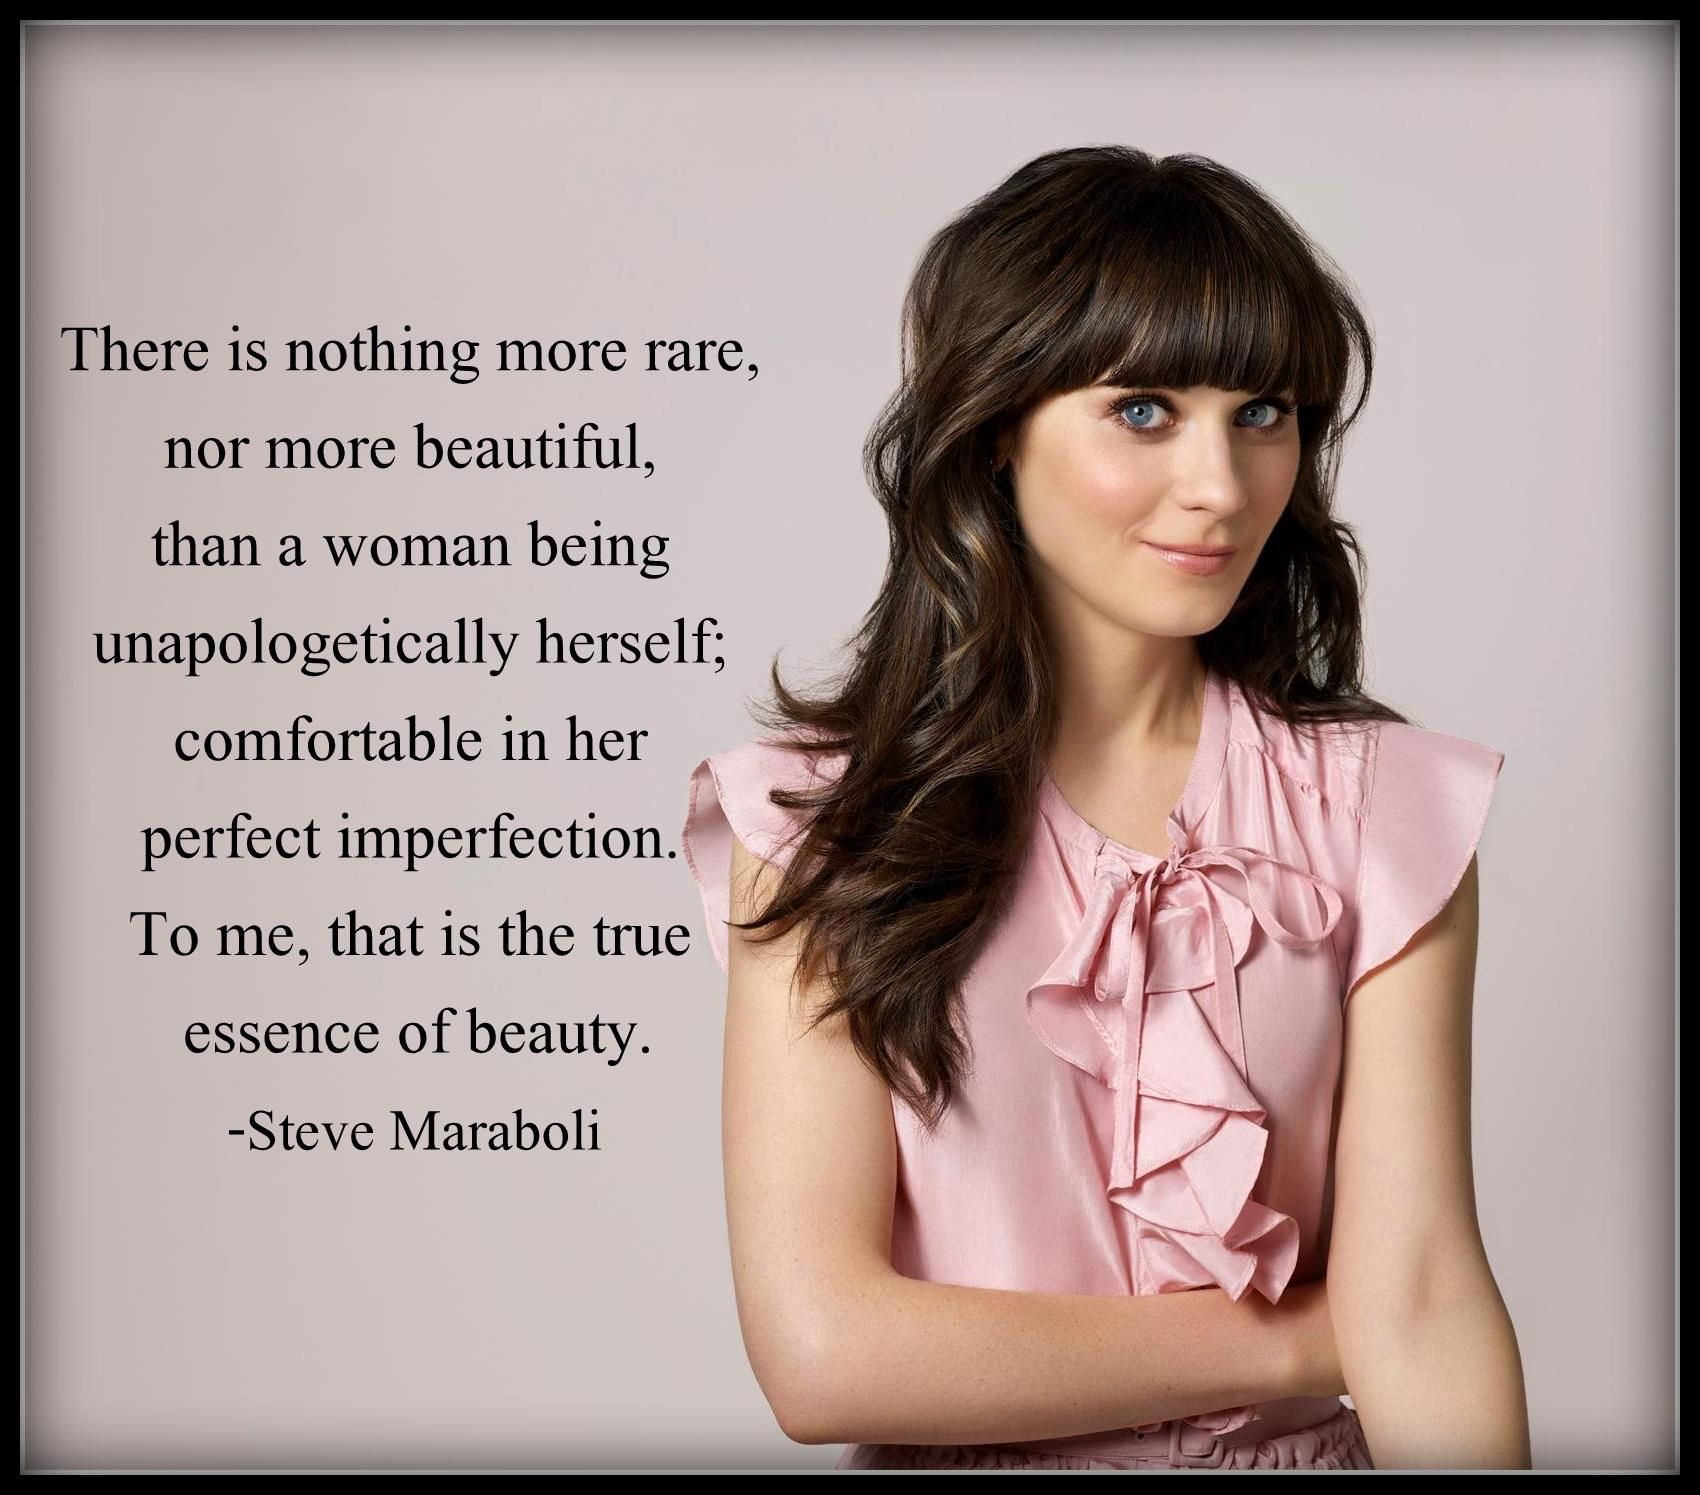 Tattoo Quotes About Not Caring What Others Think: Zooey Deschanel. I Love Her Weirdness In New Girl. Her